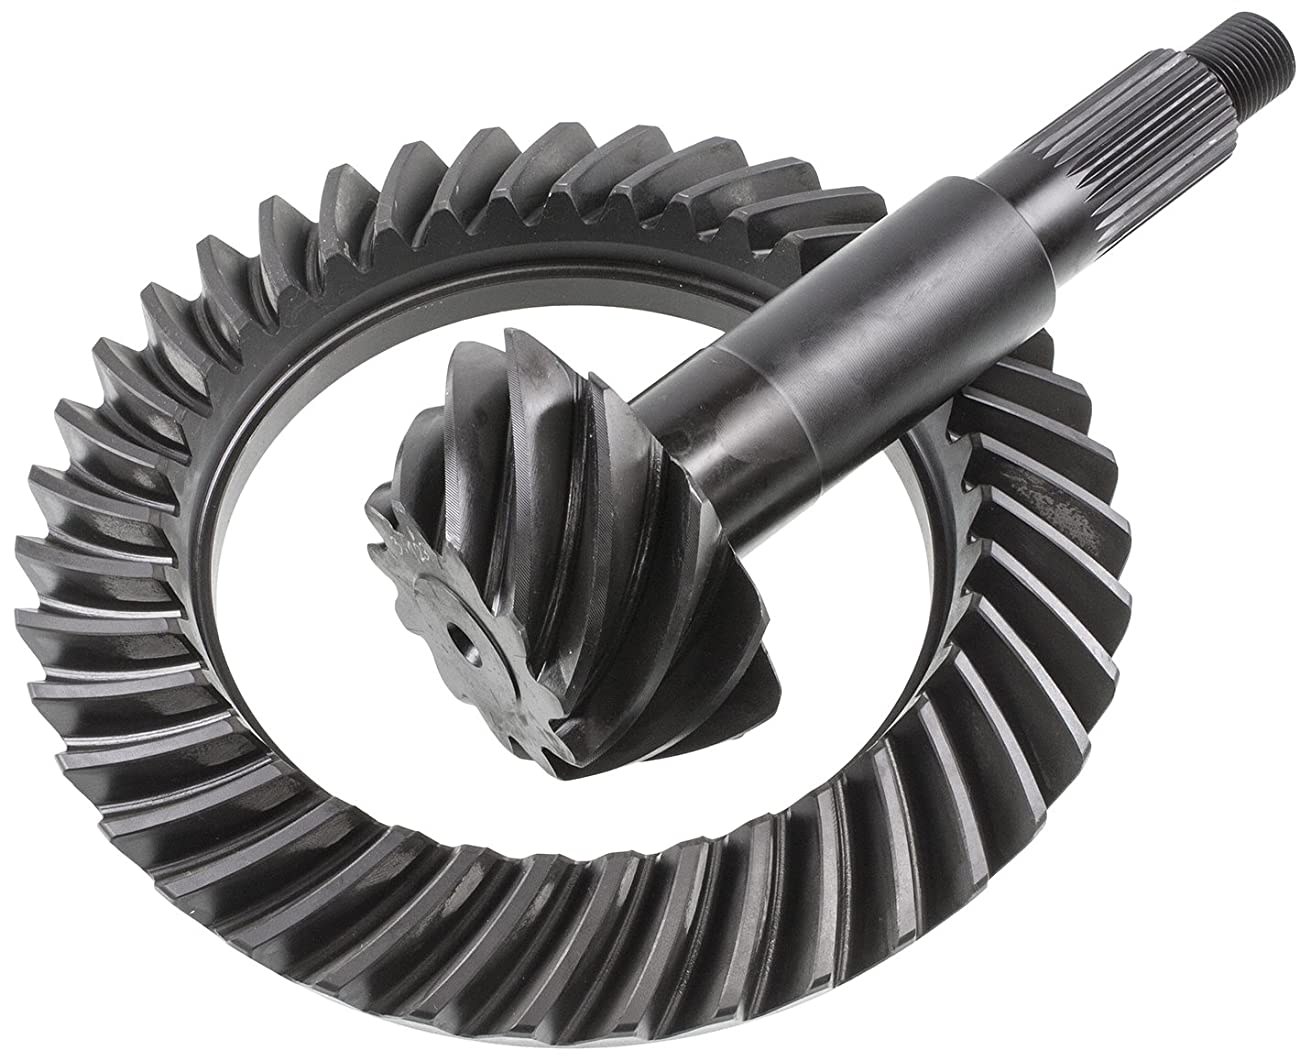 Richmond Gear 49-0129-1 Ring and Pinion DANA 60 3.54 Ring Ratio, 1 Pack